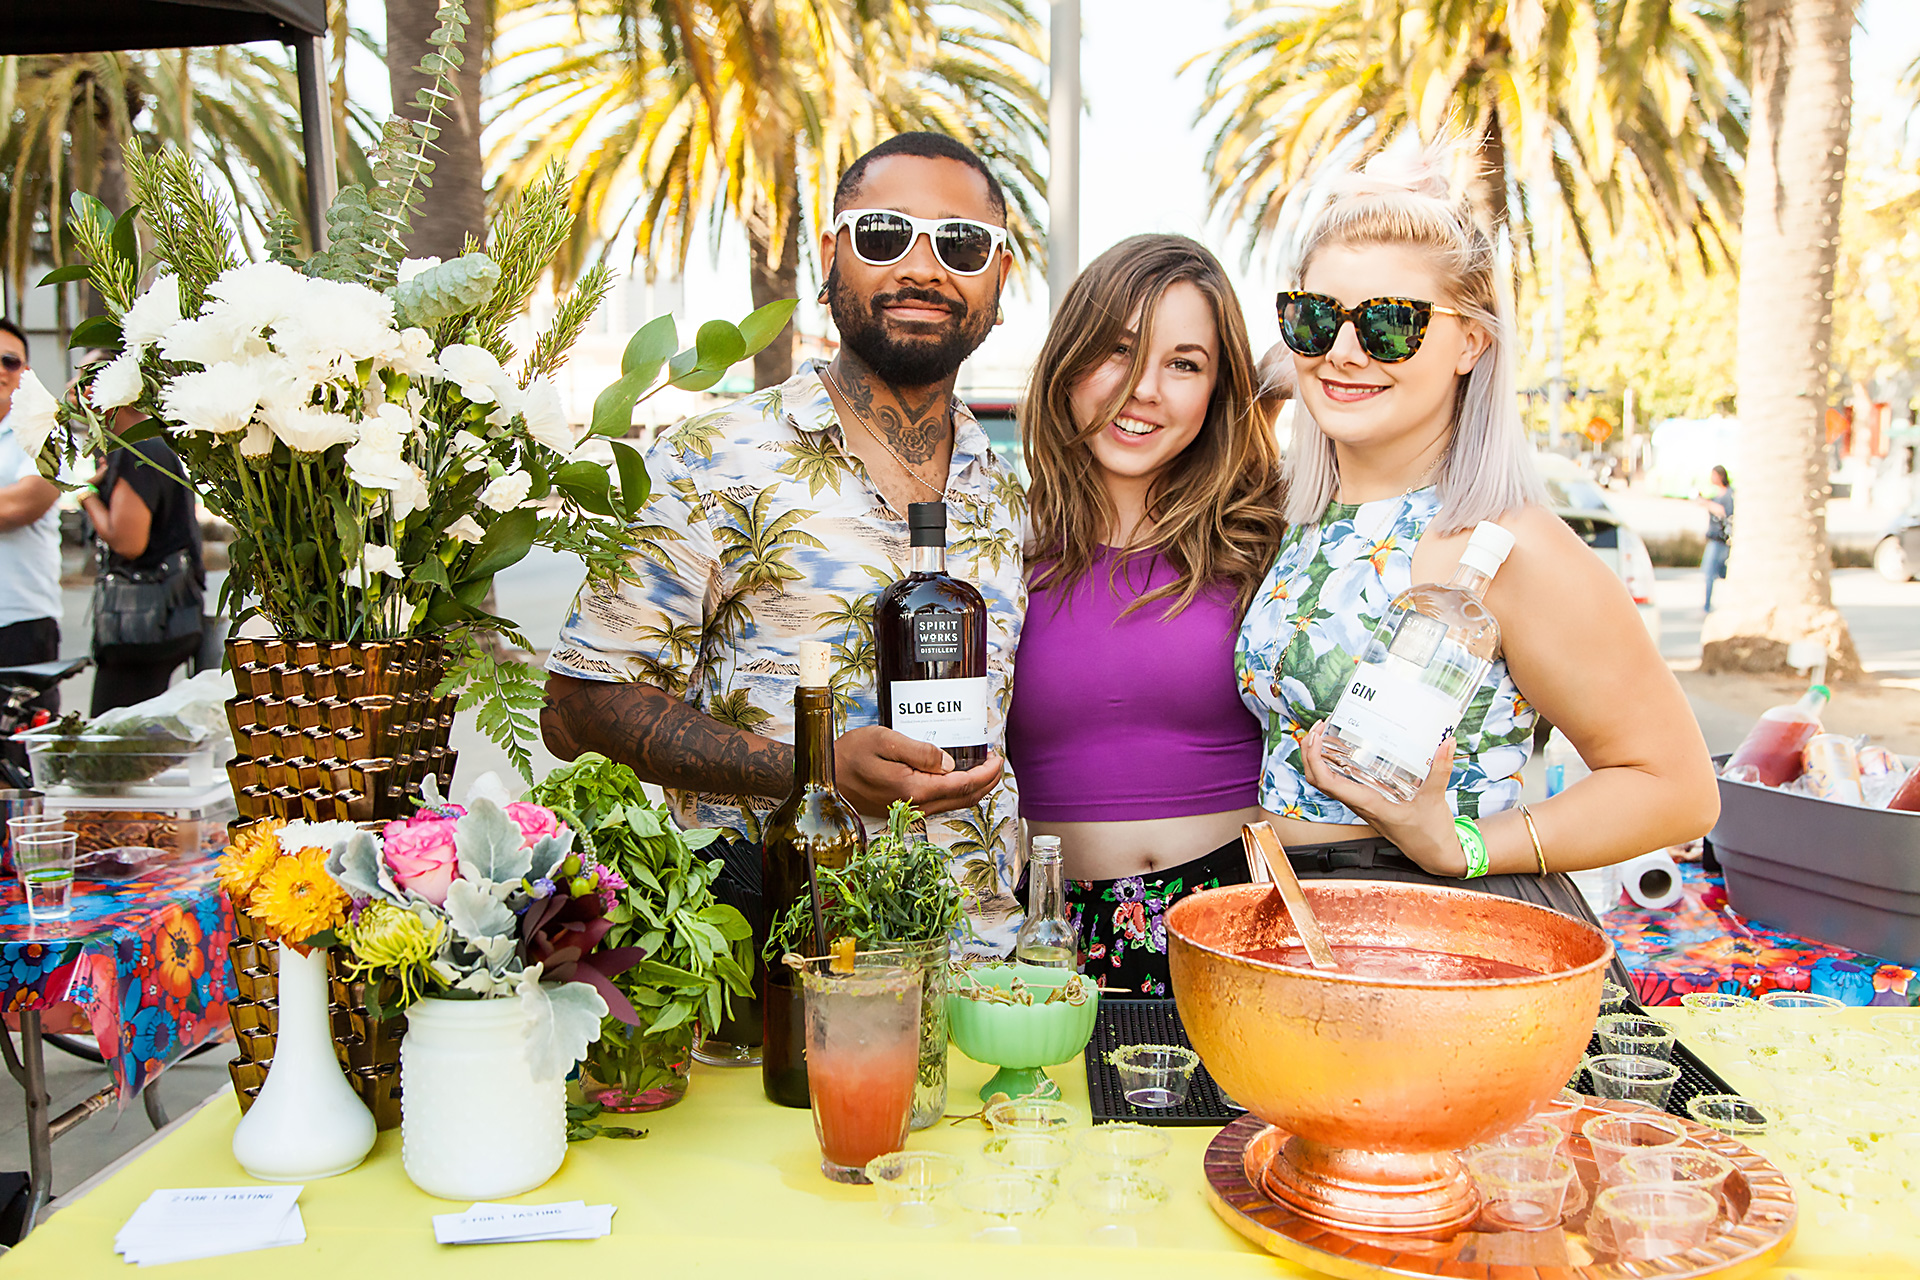 Taste your way through some fabulous cocktails at Cocktails of the Farmers Market.